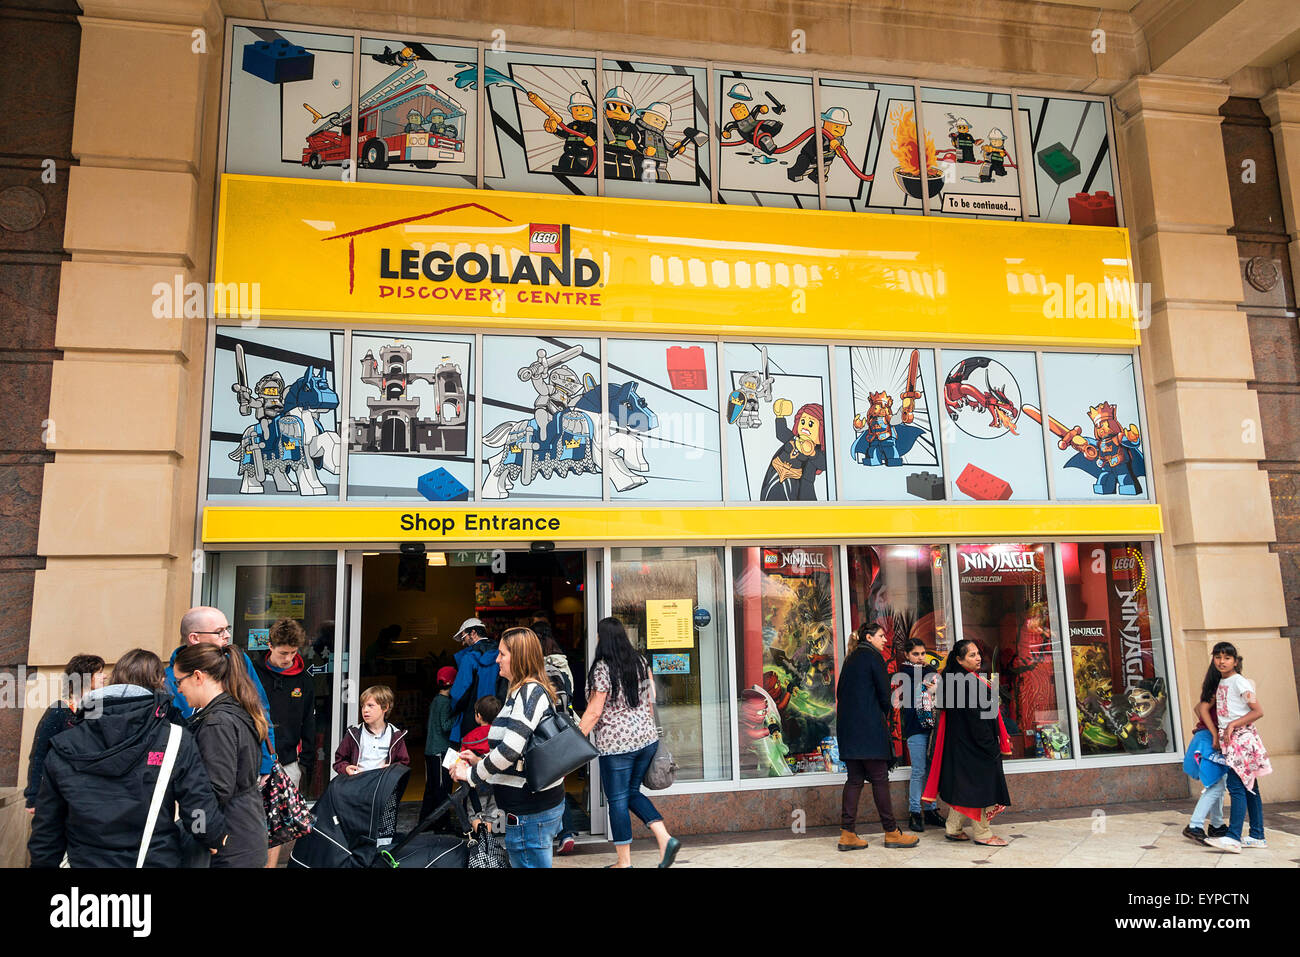 Legoland store in Barton Square, Trafford centre, Manchester, UK Stock Photo